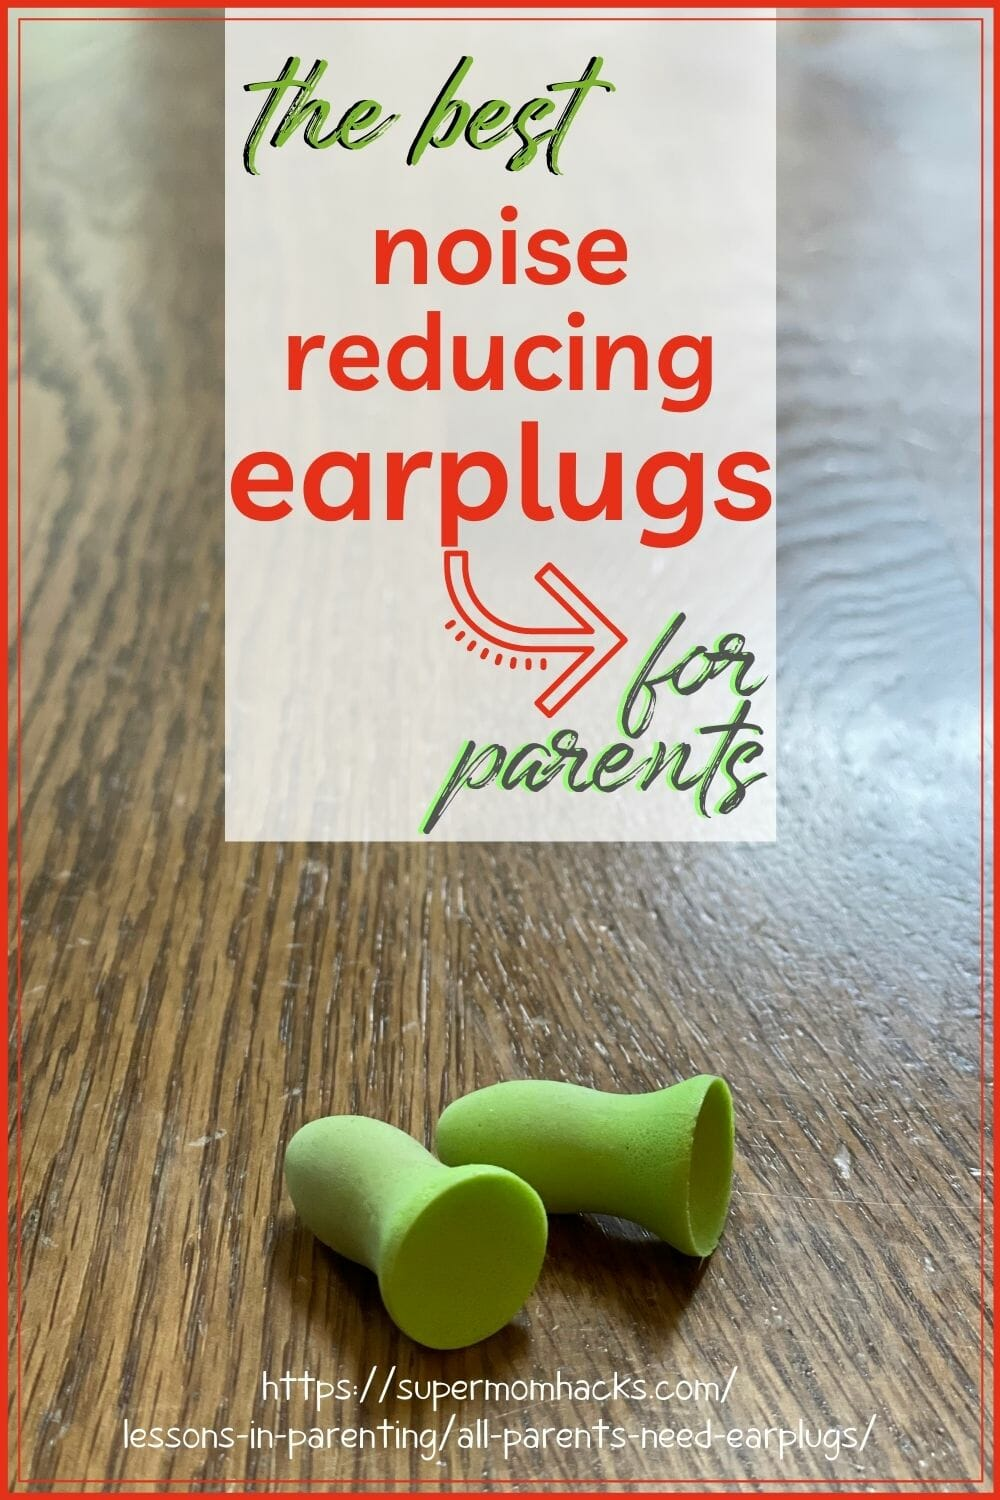 Irony of parenting: our kids rarely hear us, yet we hear them all too well. Hence why all parents need earplugs. In bulk. Why All Parents Need Earplugs: SuperMomHacks | earplugs for parents | ear plugs for parents | earplugs for new parents | earplugs for moms | noise reducing ear plugs for parents | mom hacks | best ear plugs for screaming baby | sleeping ear plugs for kids | ear plugs for sleeping for kids | best airplane hacks | noise reduction earplugs for parents | best earplugs for parents